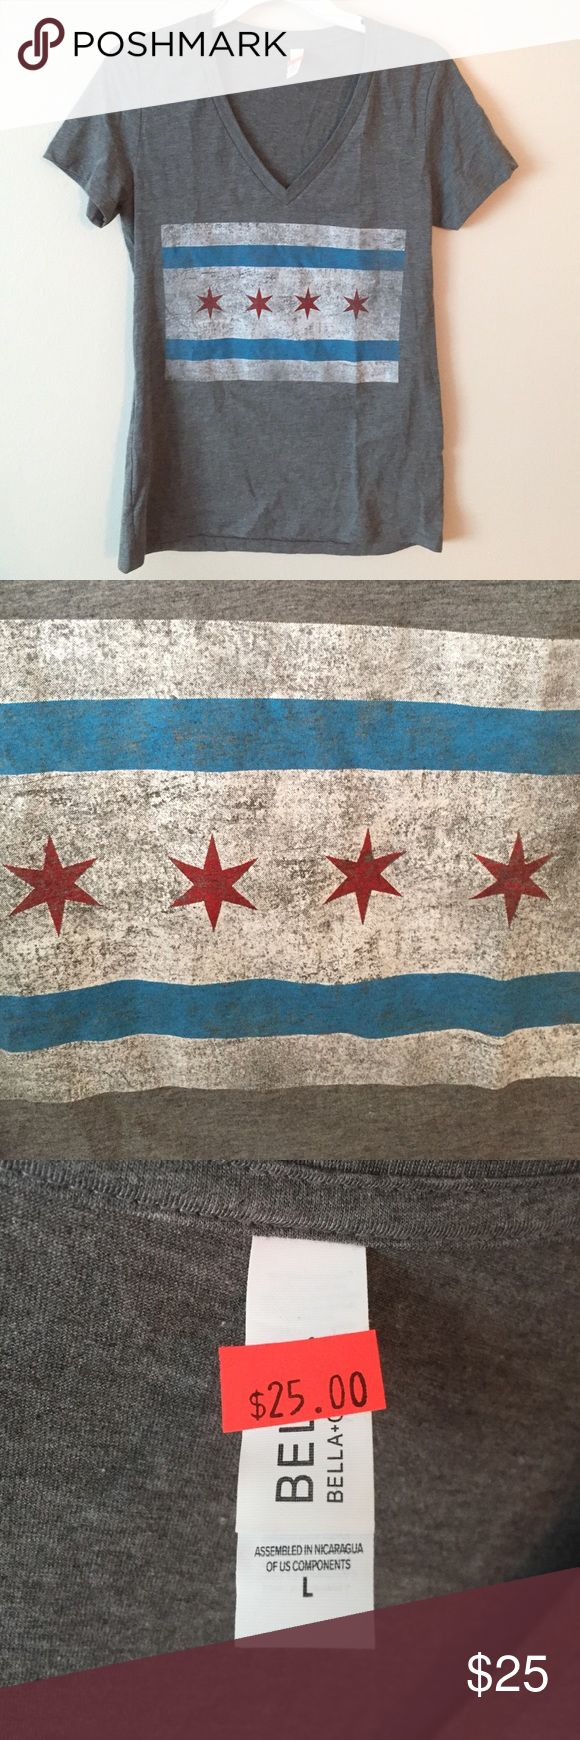 Chicago flag v-neck Rep Chicago pride with this soft and casual v-neck with a Chicago flag print. Brand new, never worn! No trades please. Tops